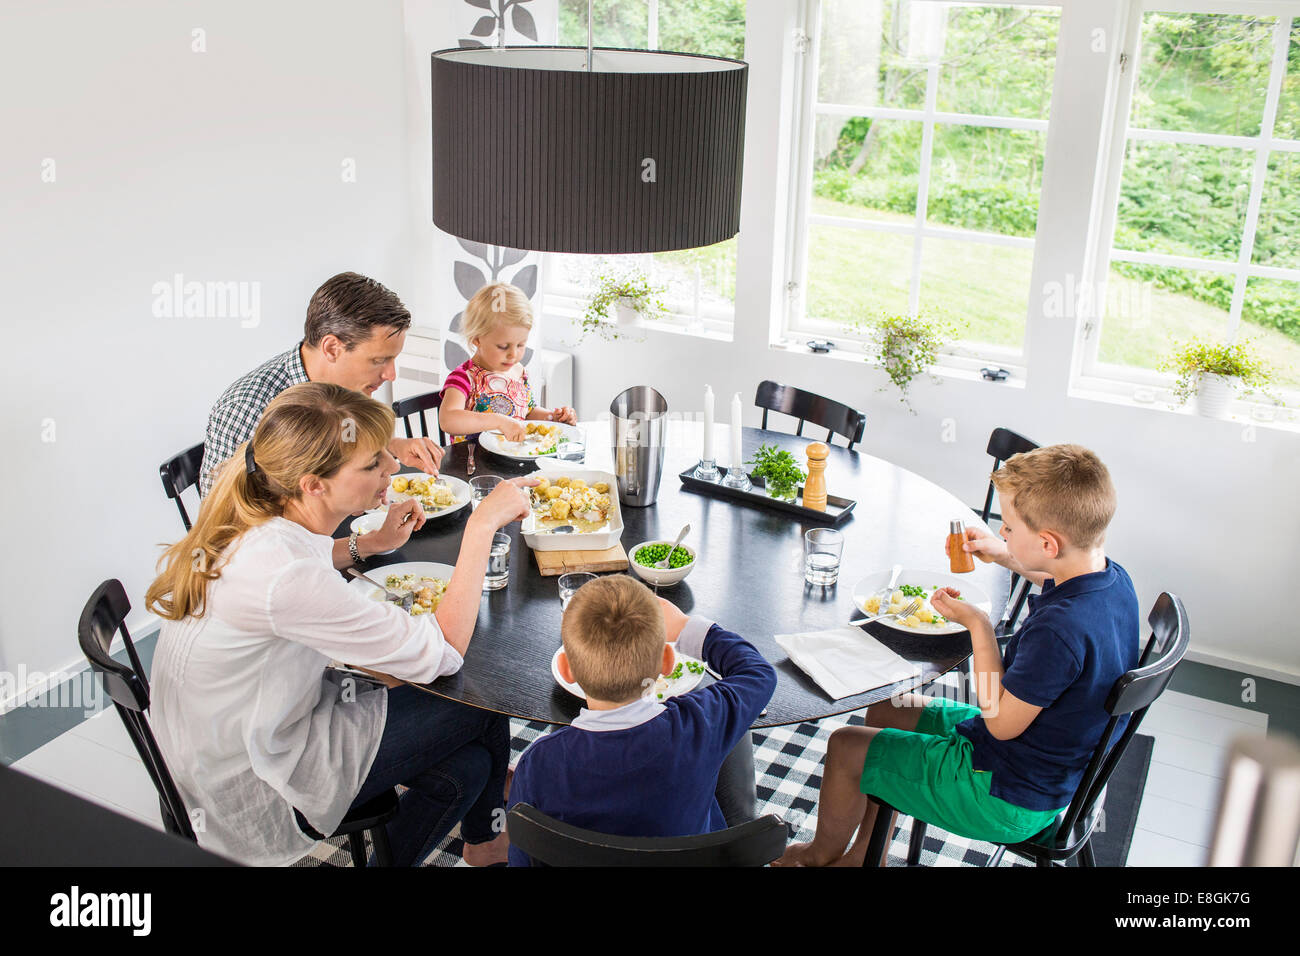 Family having lunch at home - Stock Image